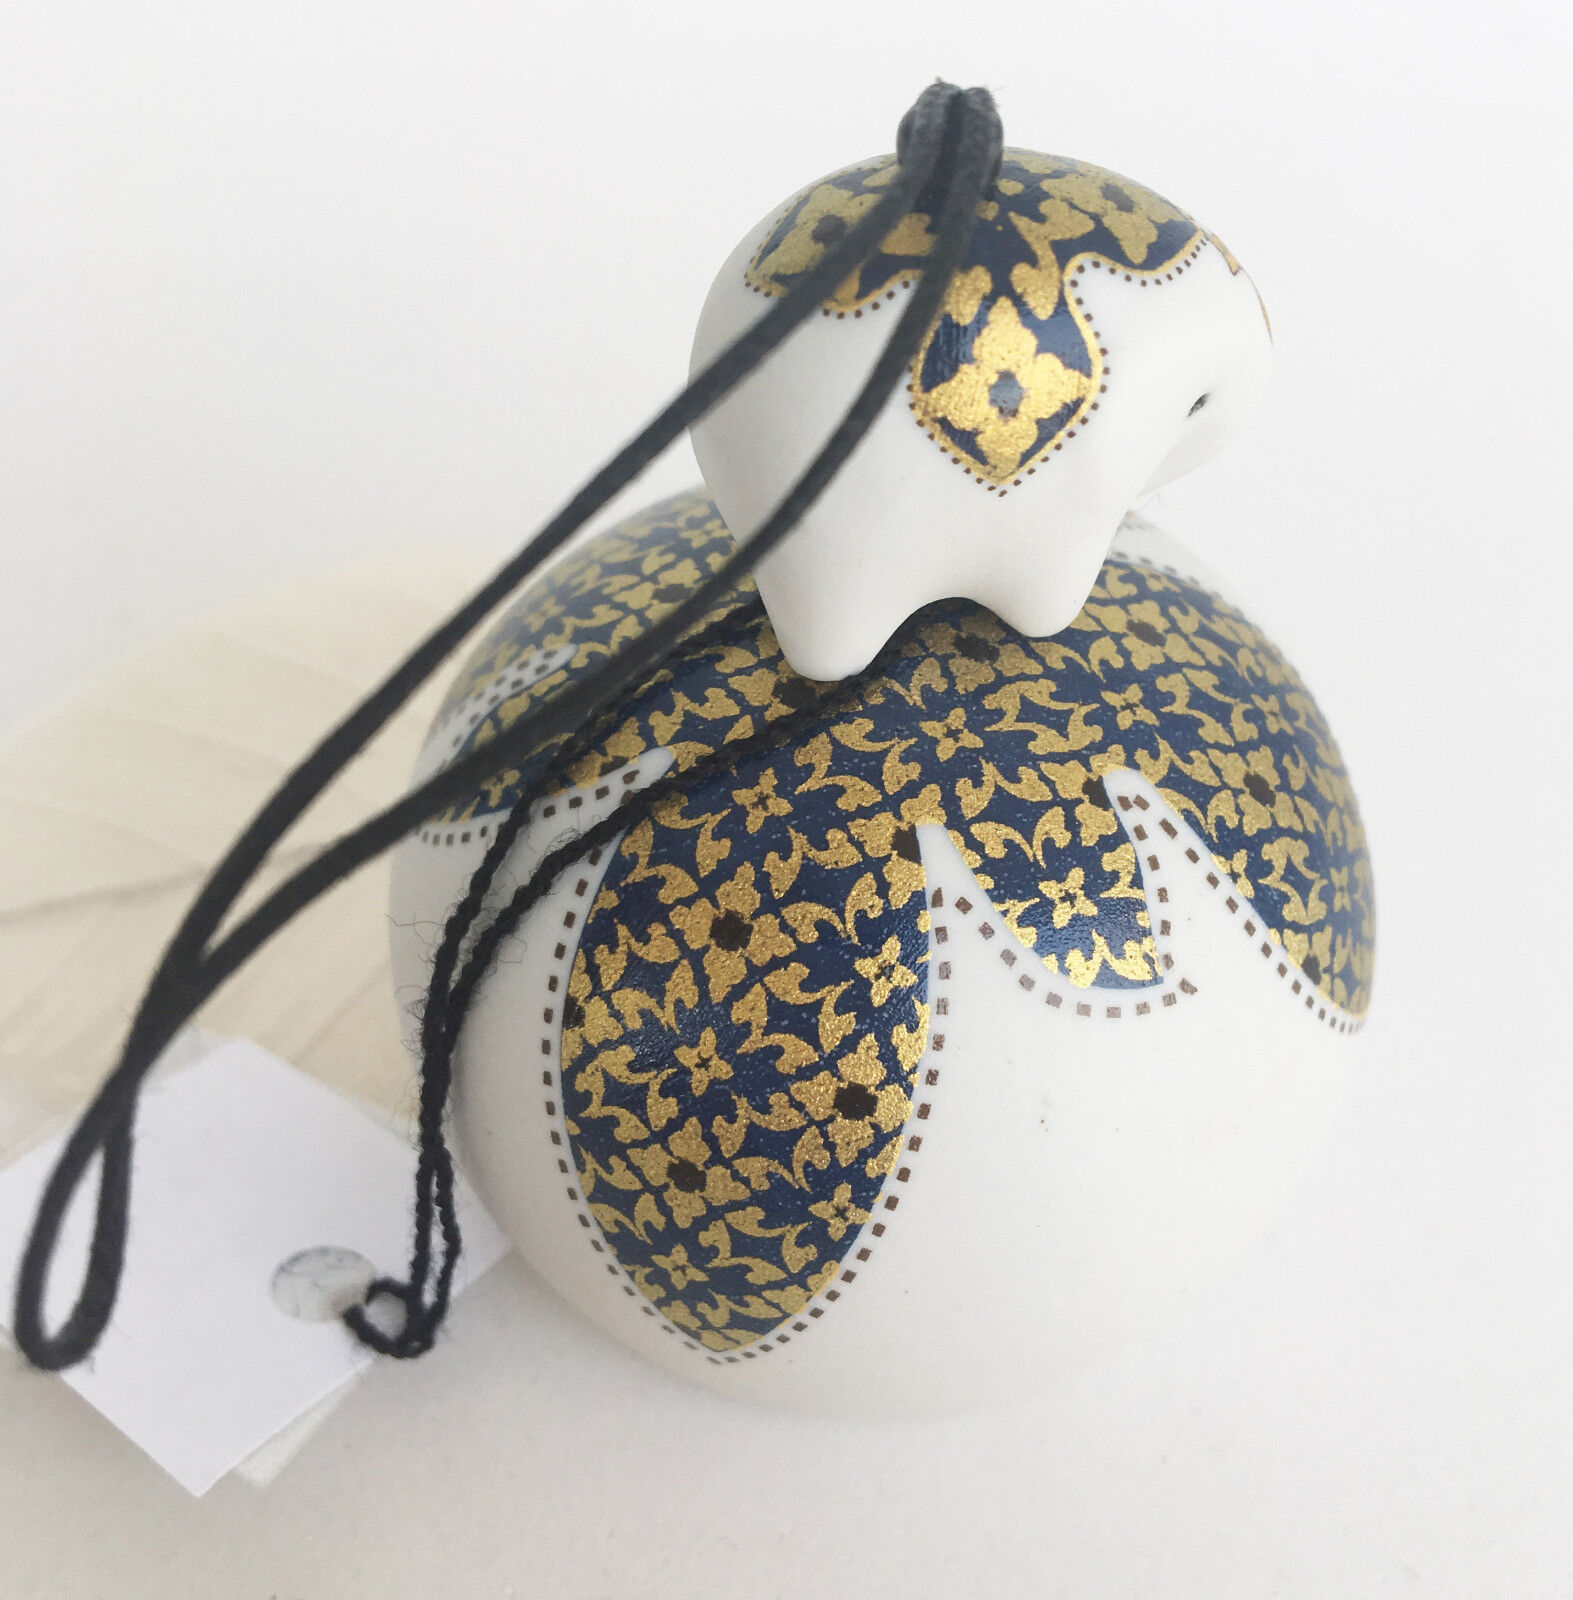 Elephant Wind Chime Bell Ceramic Black Gold Painted Home Gift Decoration